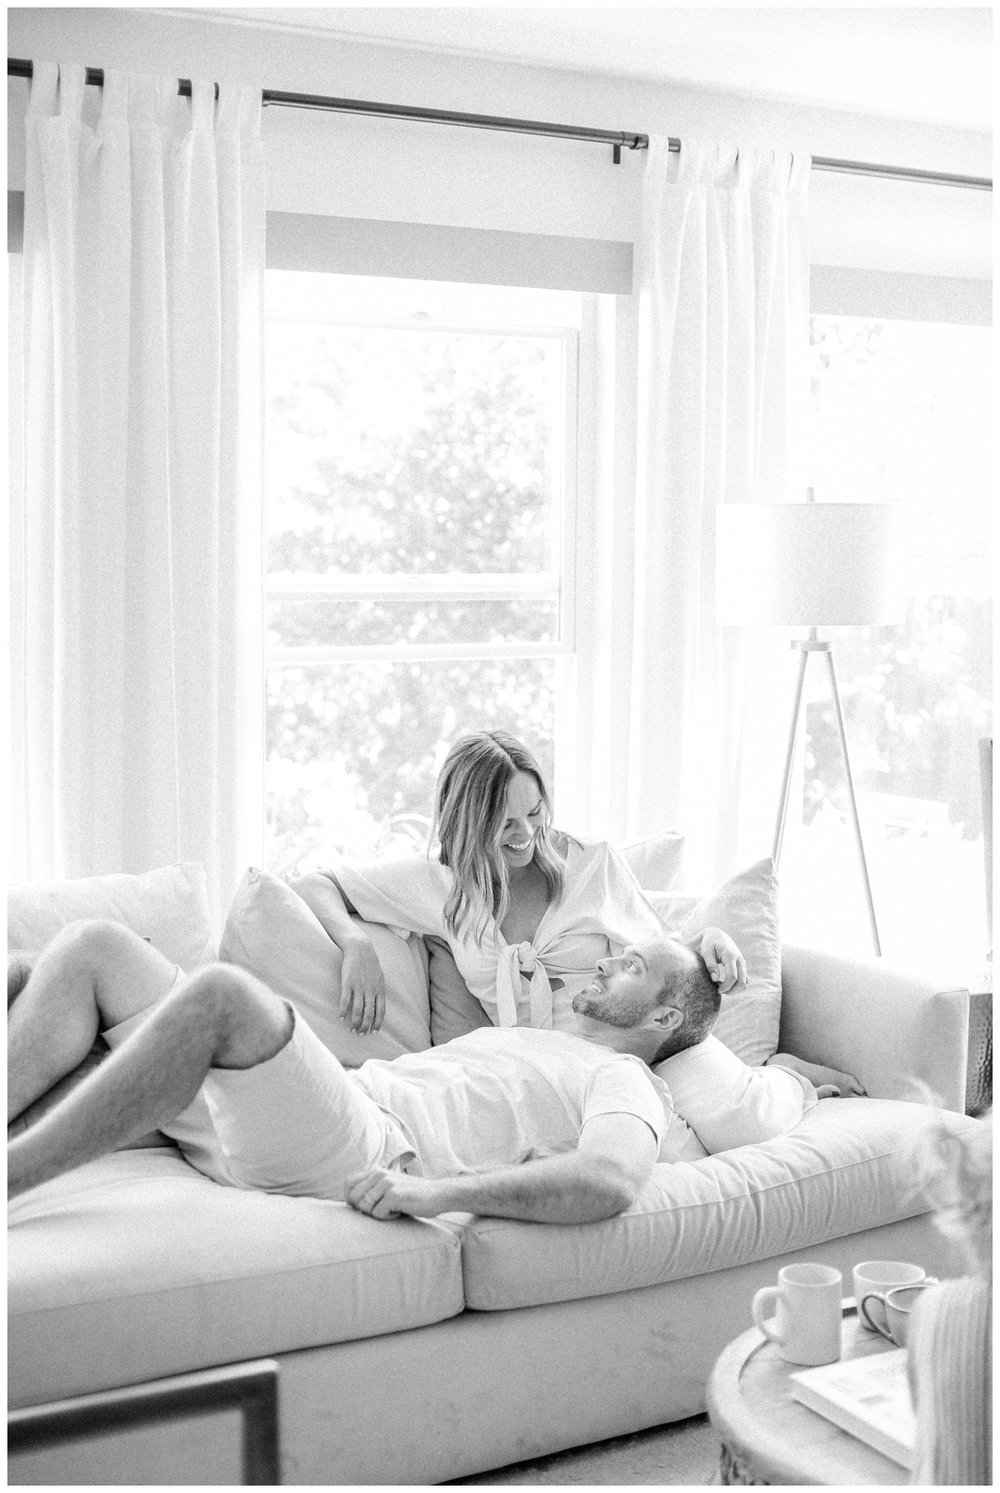 Newport_Beach_Lifestyle_in-Home_Photographer_Newport_Beach_In-Home_Photography_Orange_County_Photographer_Cori_Kleckner_Photography_Orange_County_in-home_Photography_Kristin_Dinsmore_Family_session_1911.jpg